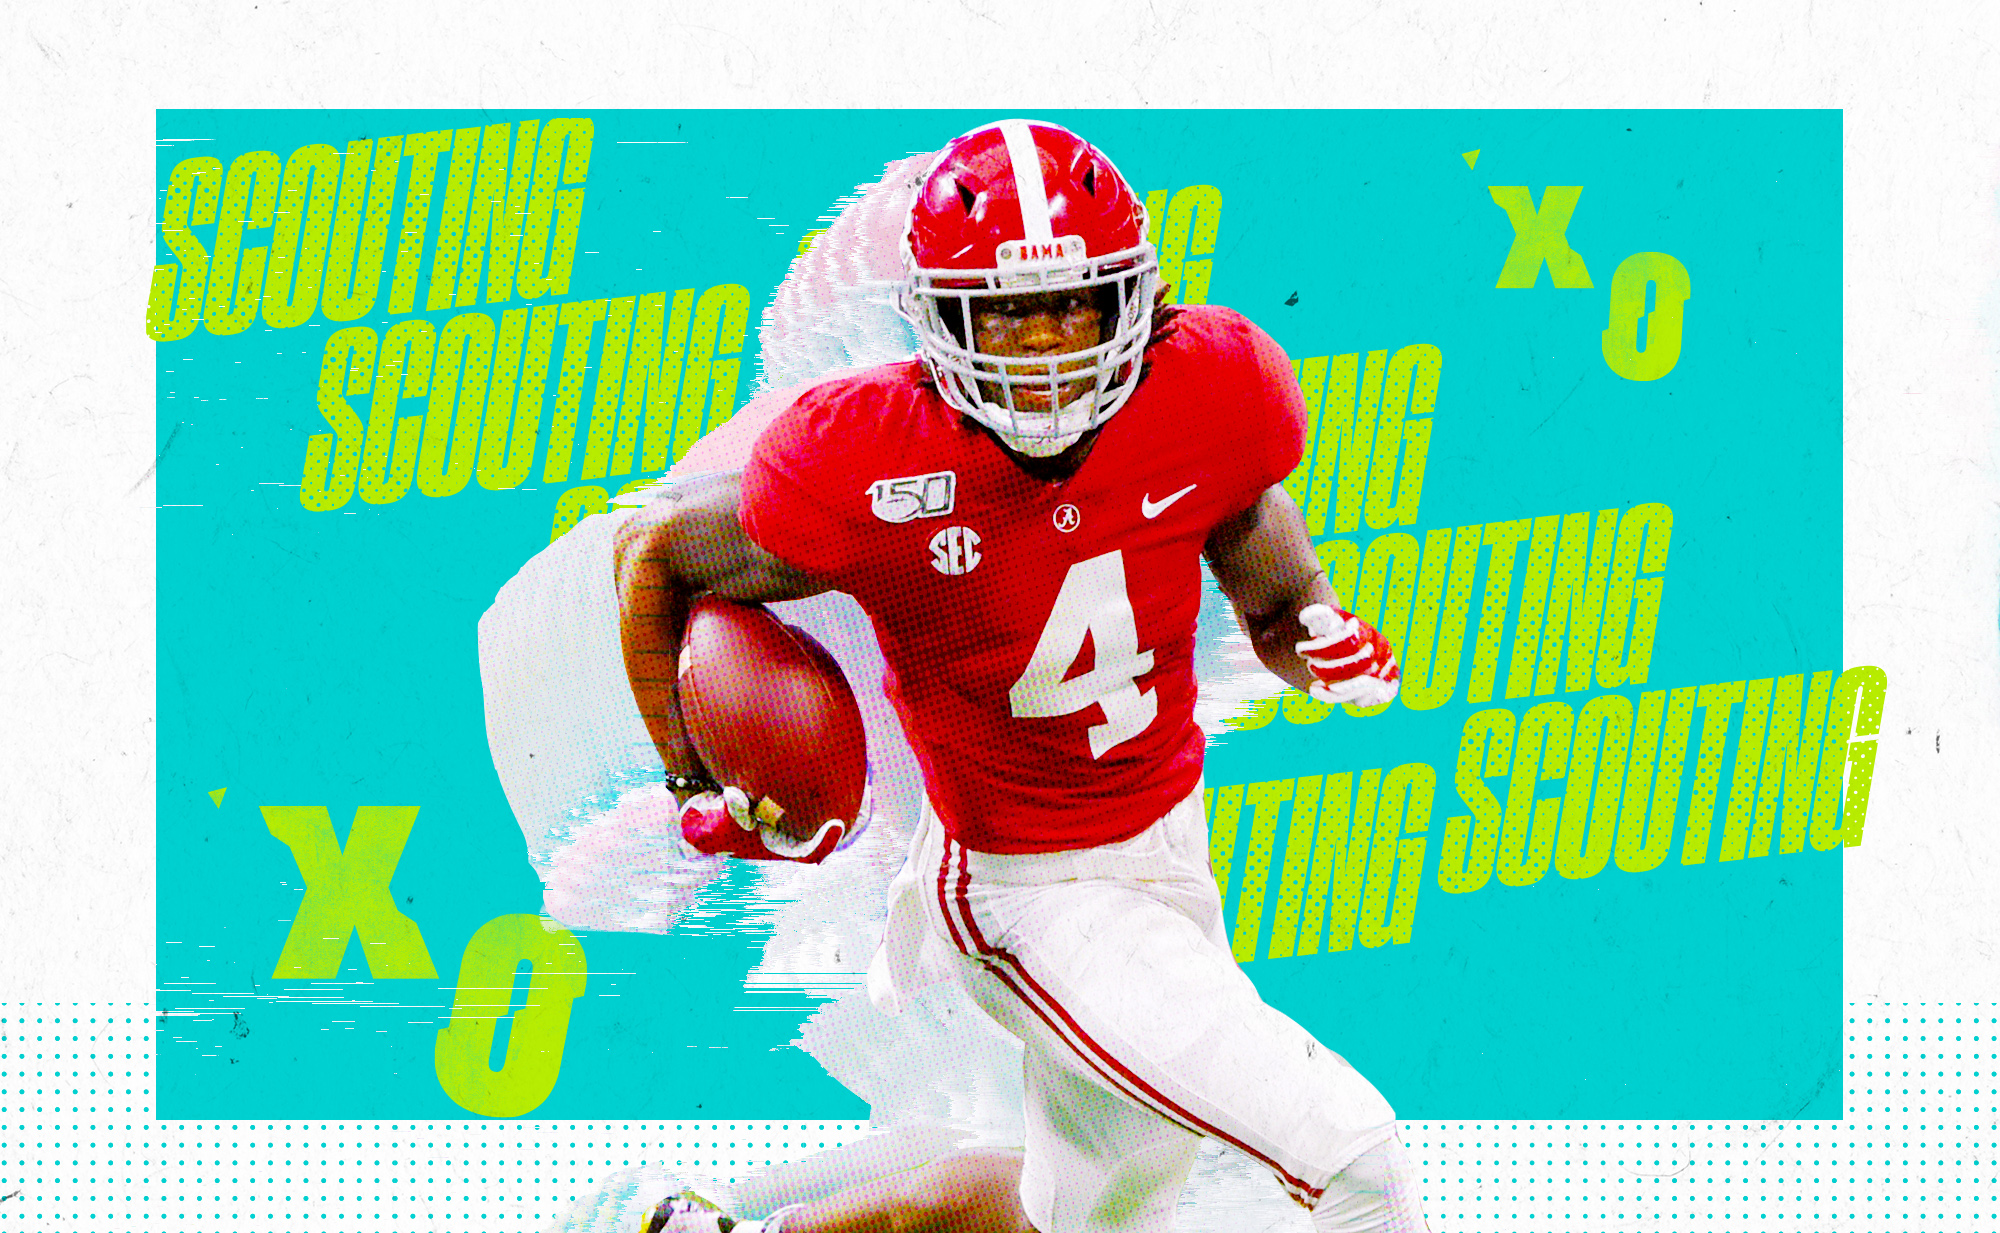 """Artwork of NFL WR prospect Jerry Jeudy carrying the ball at Alabama, superimposed on an aqua background with """"scouting"""" and """"X's and O's in neon green letters"""